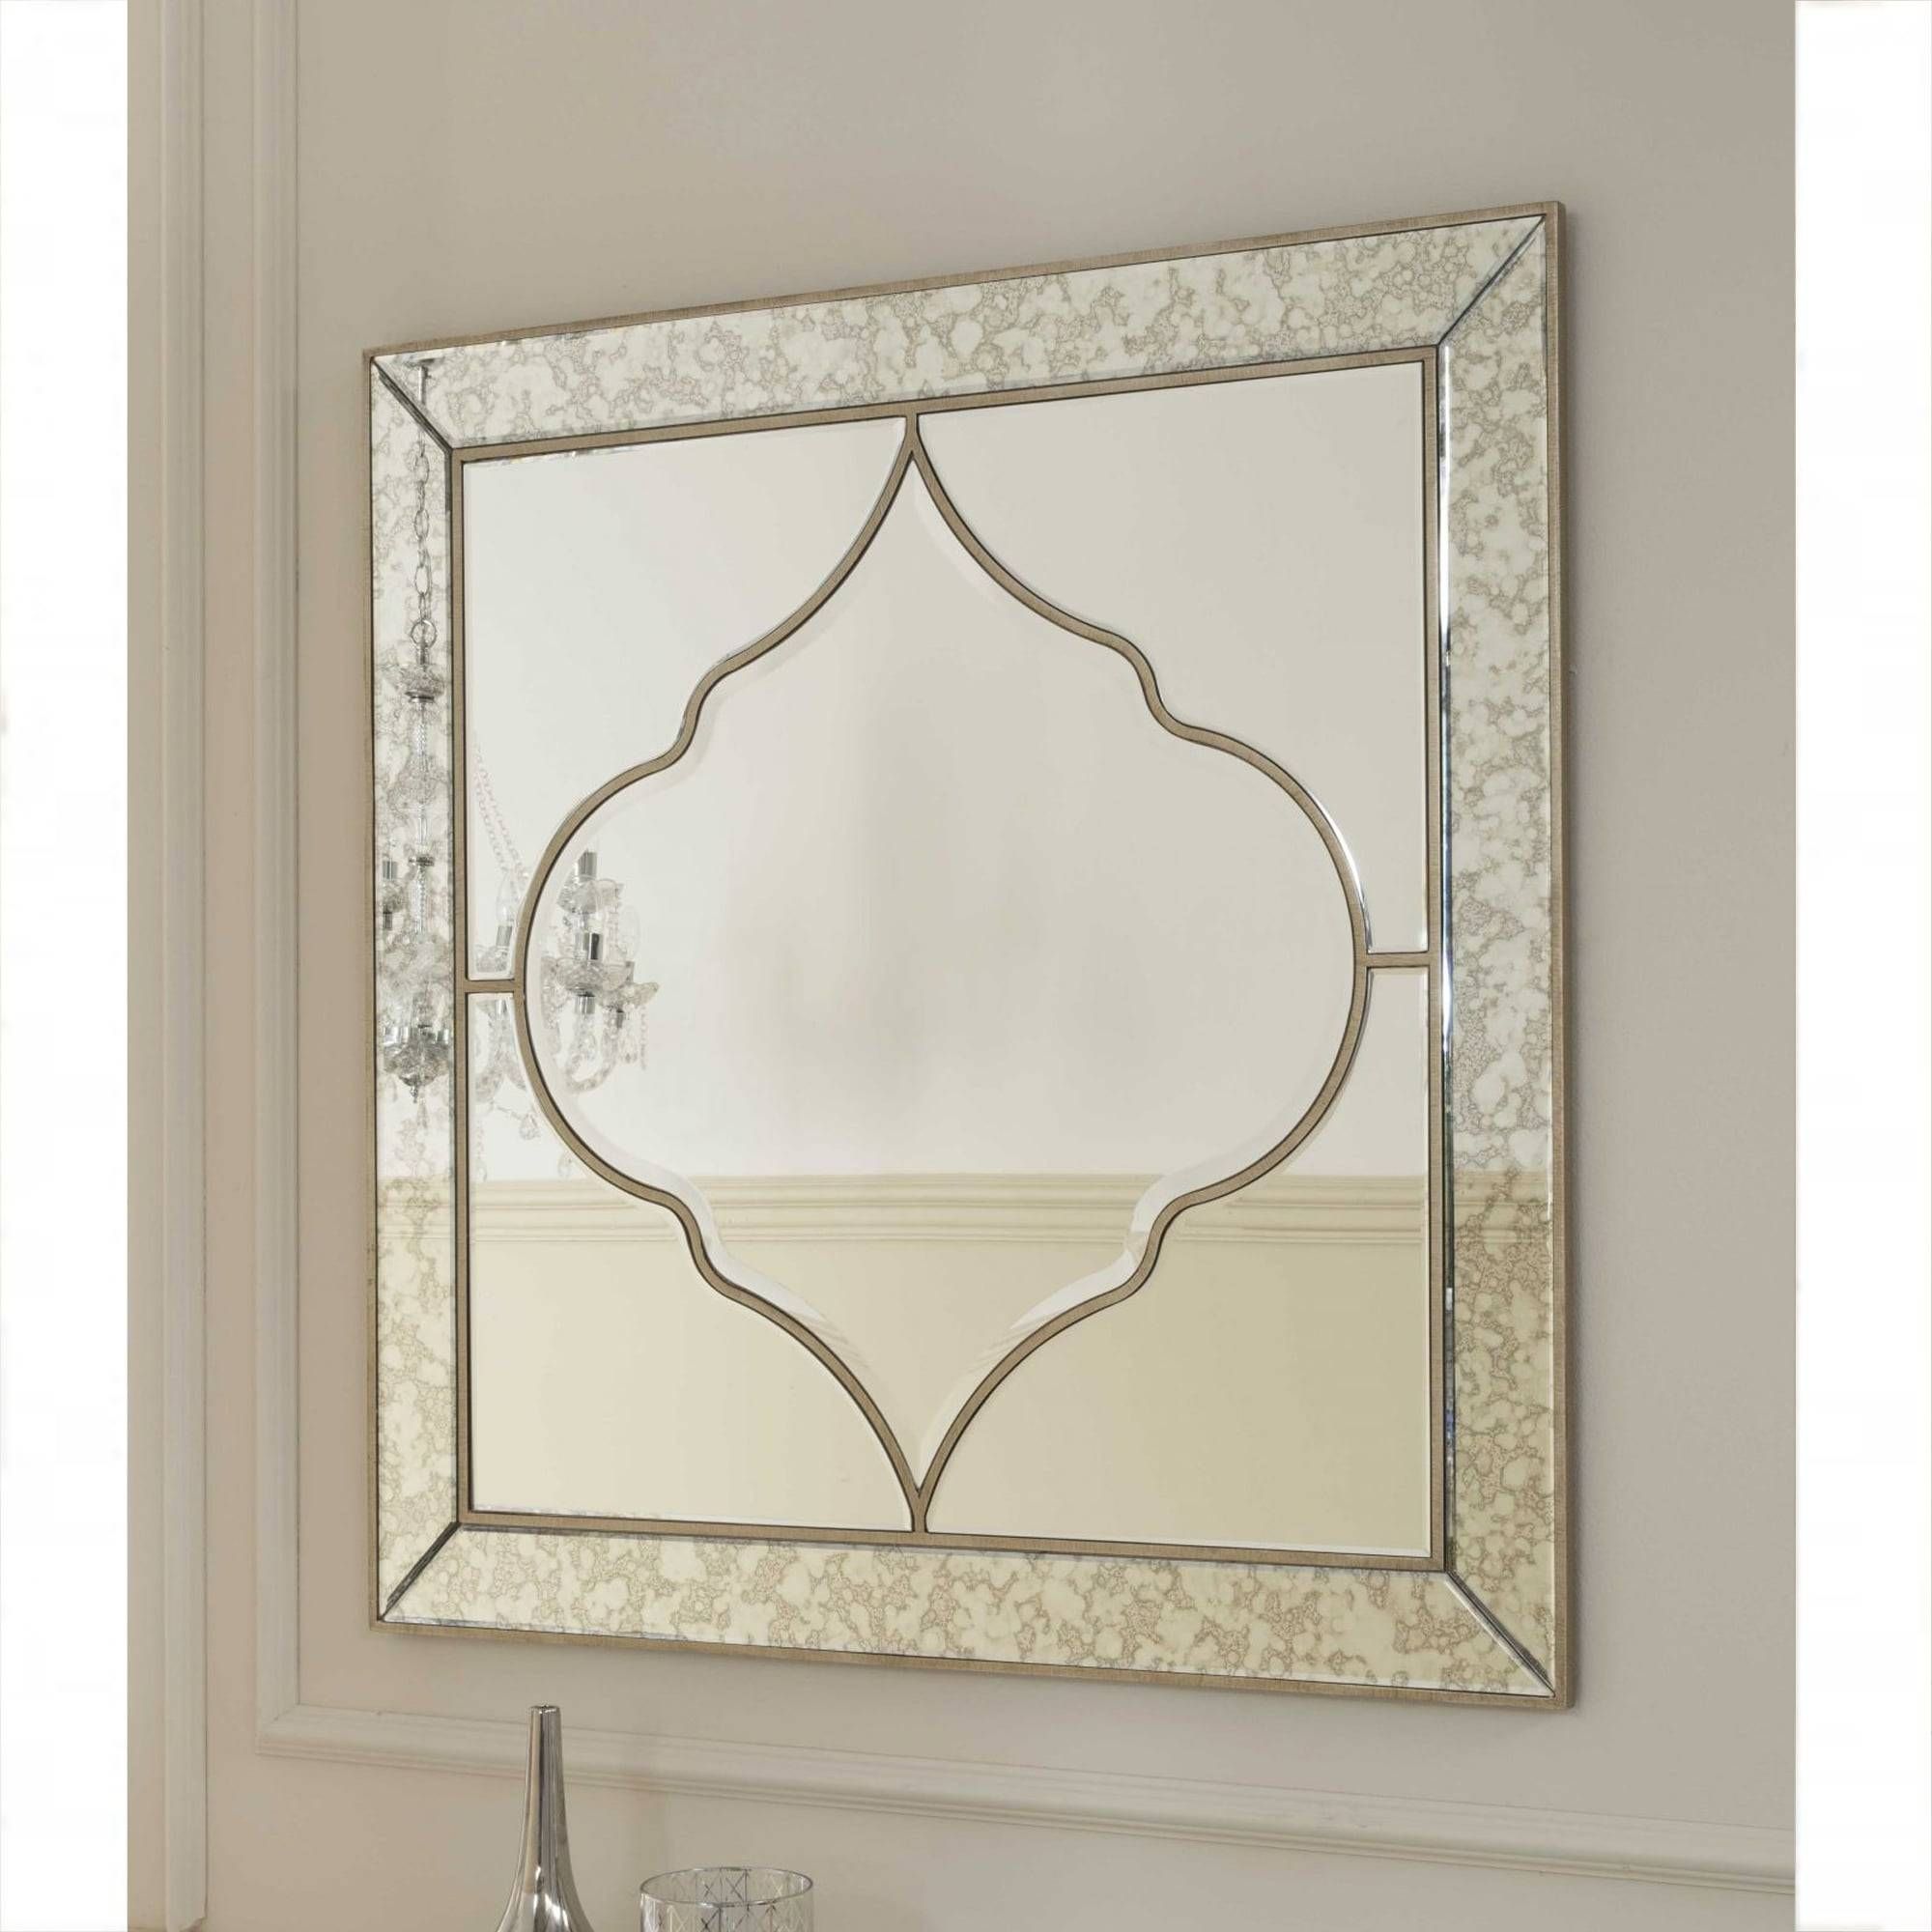 Sassari Venetian Wall Mirror | Mirrored Furniture pertaining to Venetian Wall Mirrors (Image 21 of 25)